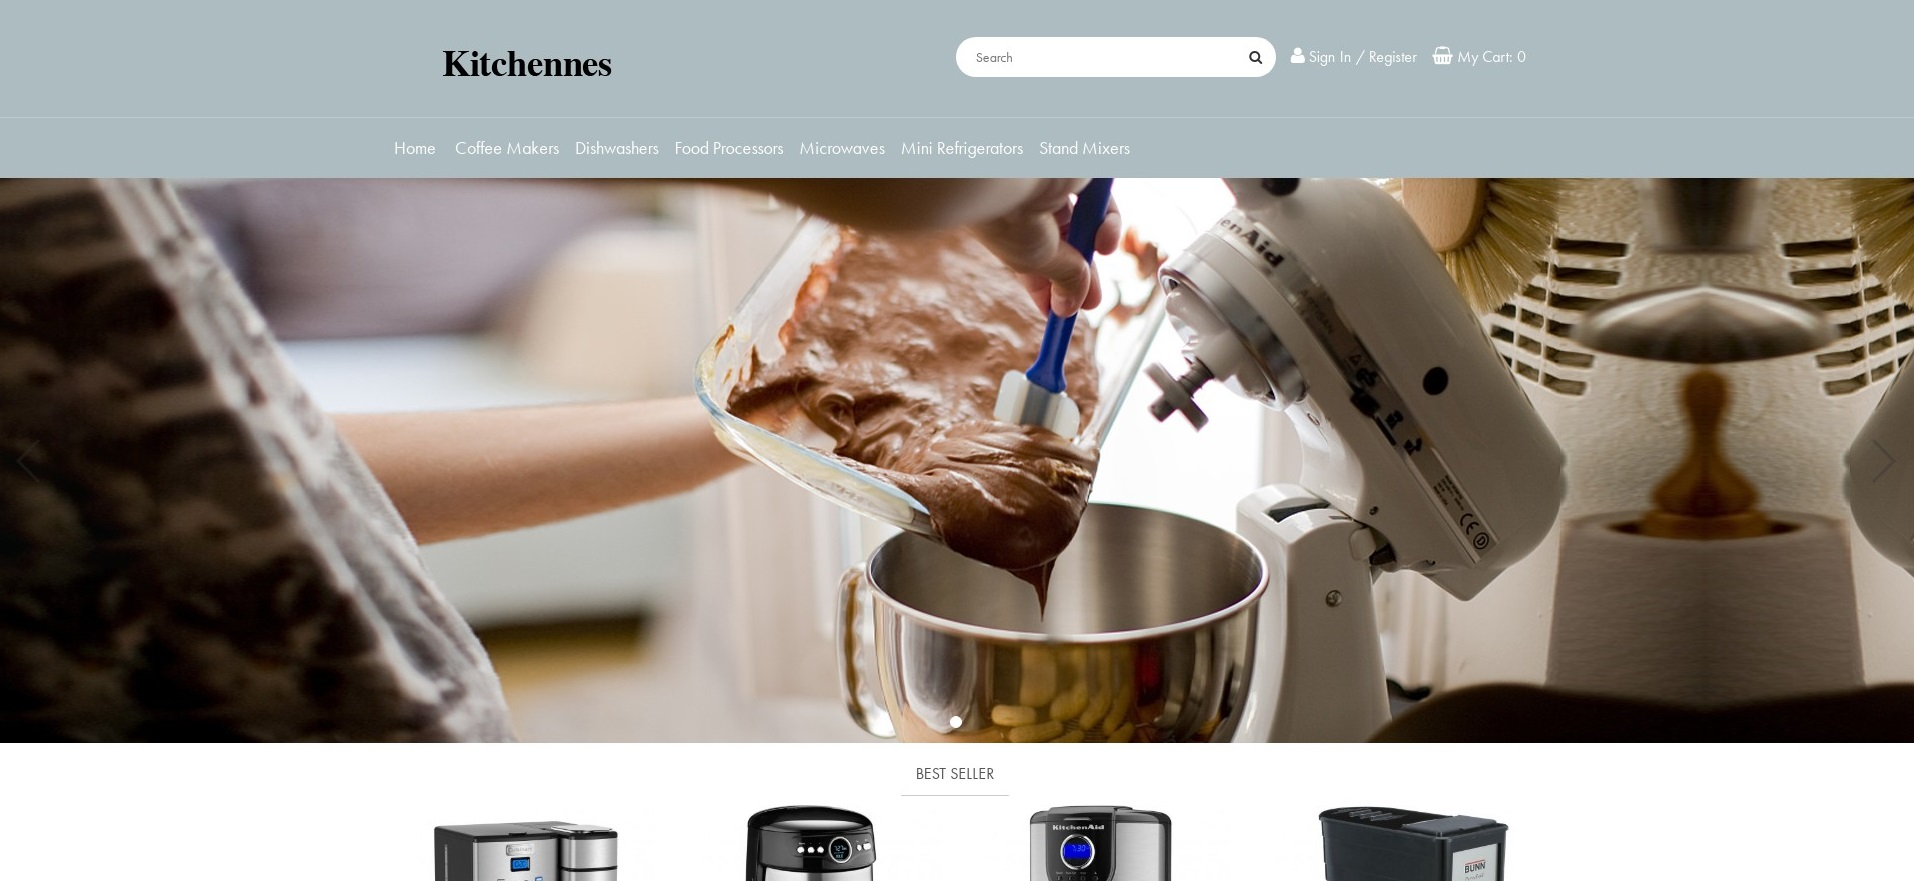 Kitchennes Scam  Reviews of the Appliance Store at Kitchennes.com